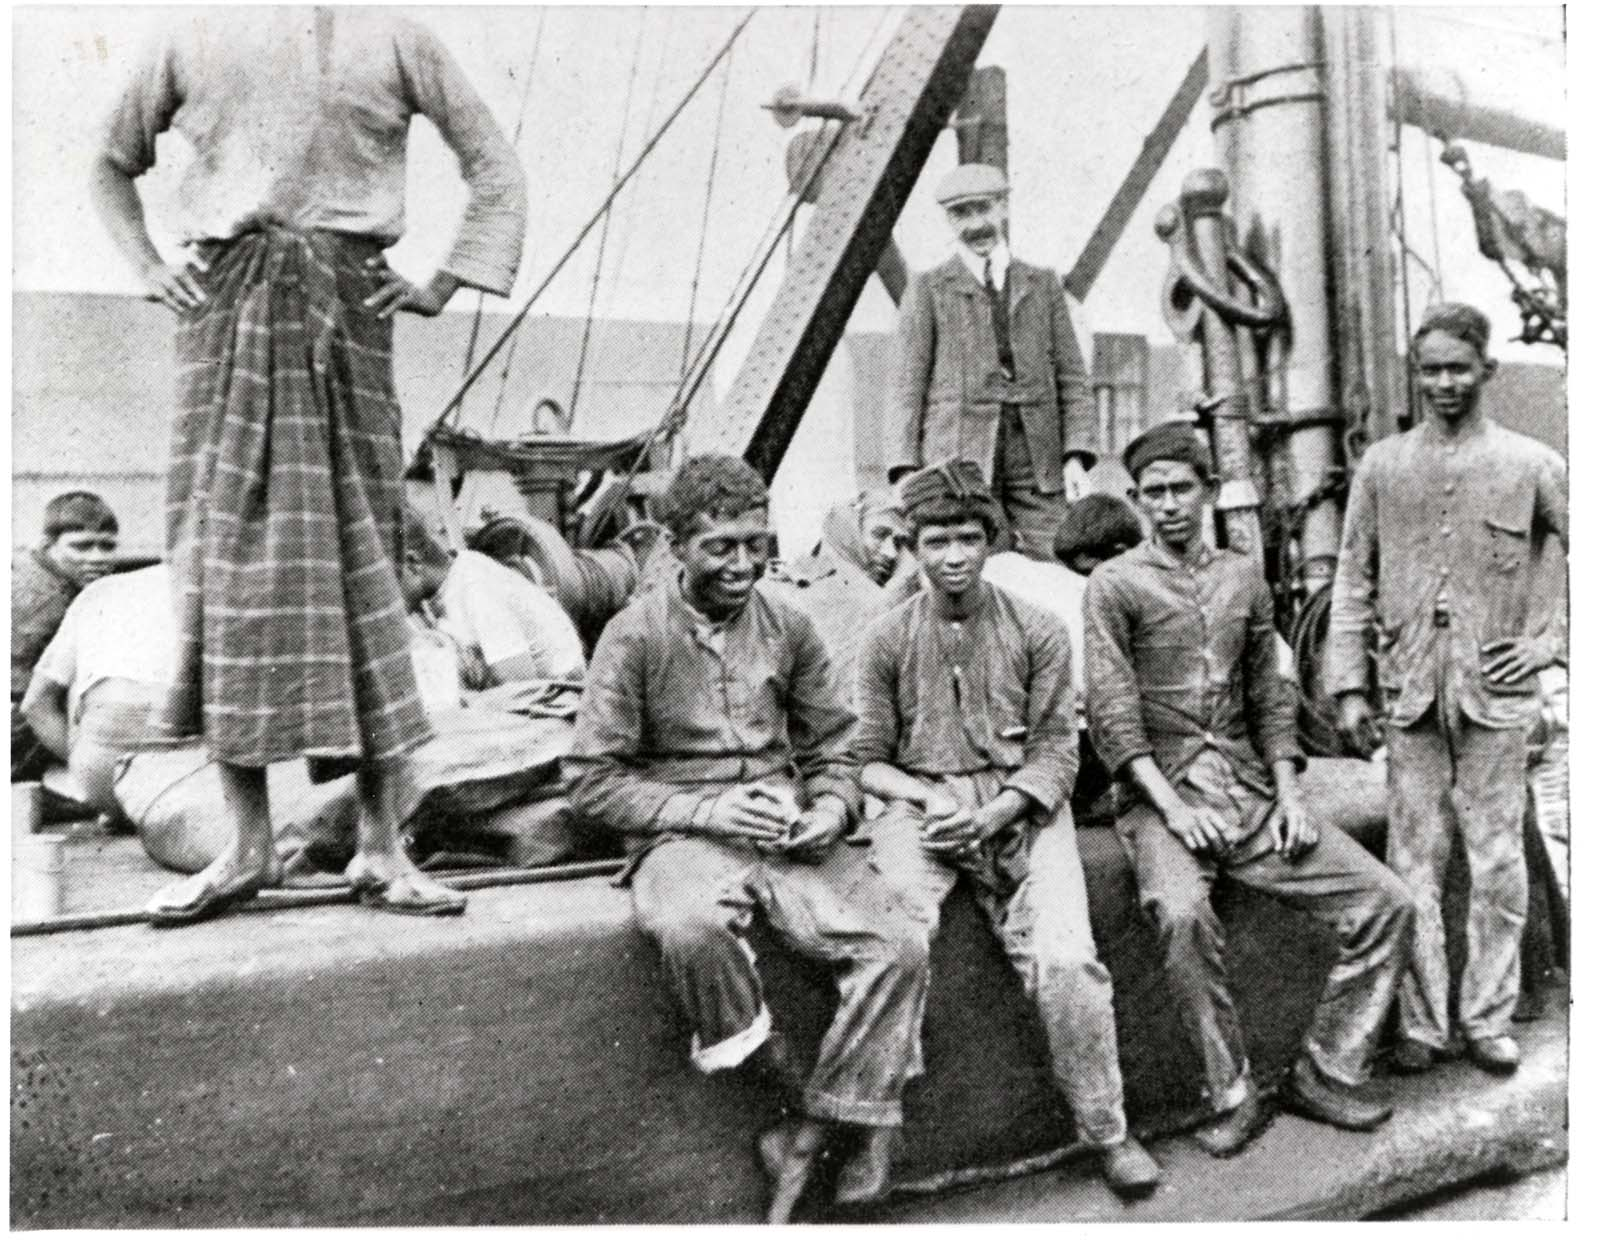 photo of a group of seamen siting on the deck of ship